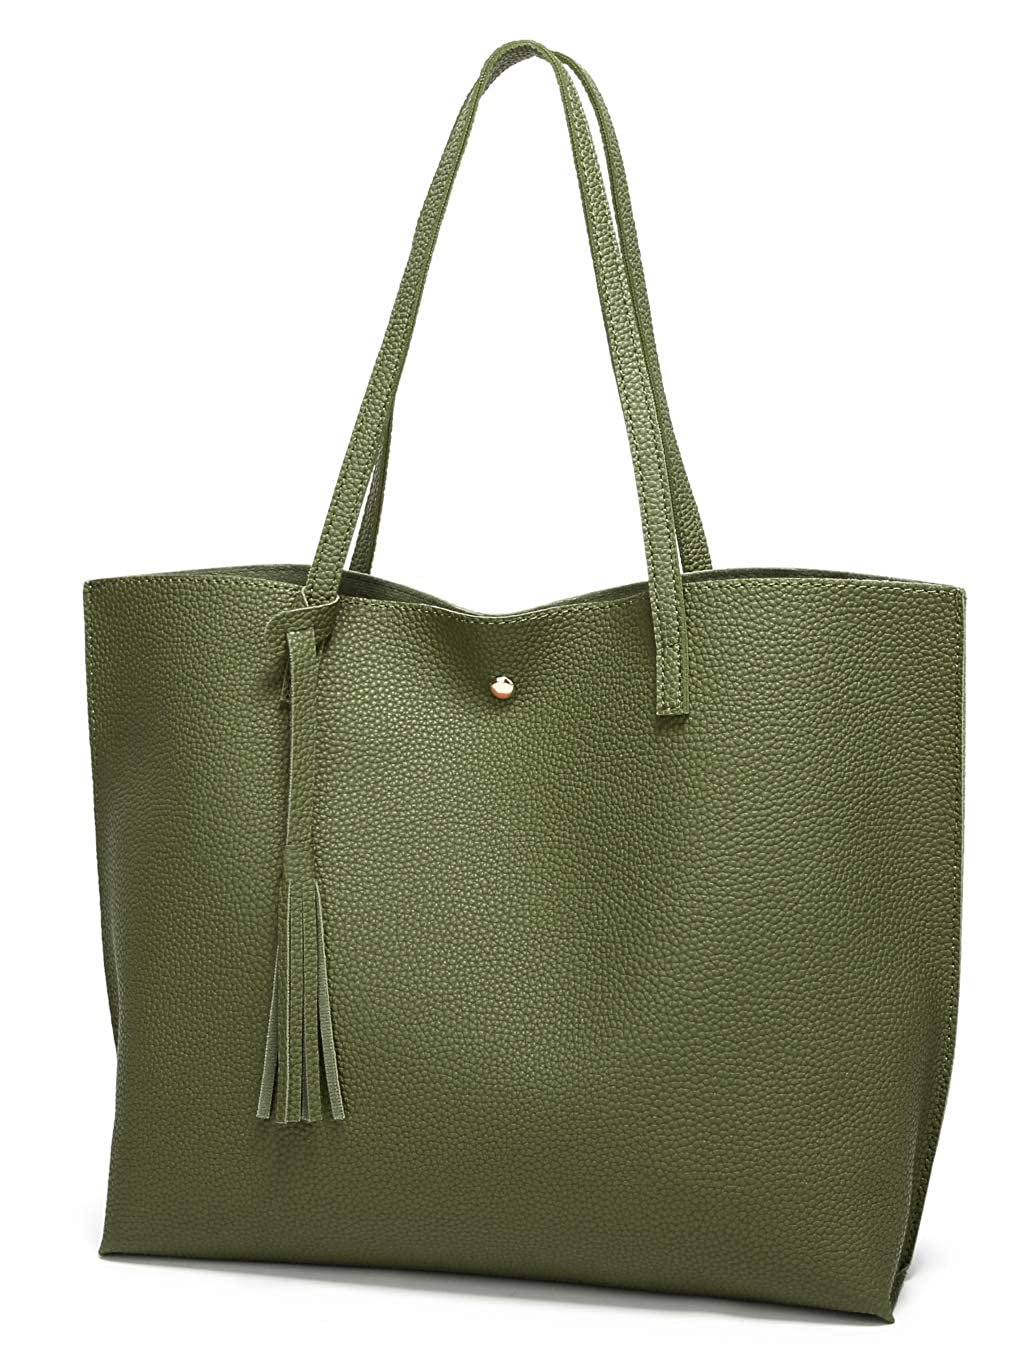 072f1acb9f345 Amazon.com  Women s Soft Leather Tote Shoulder Bag from Dreubea